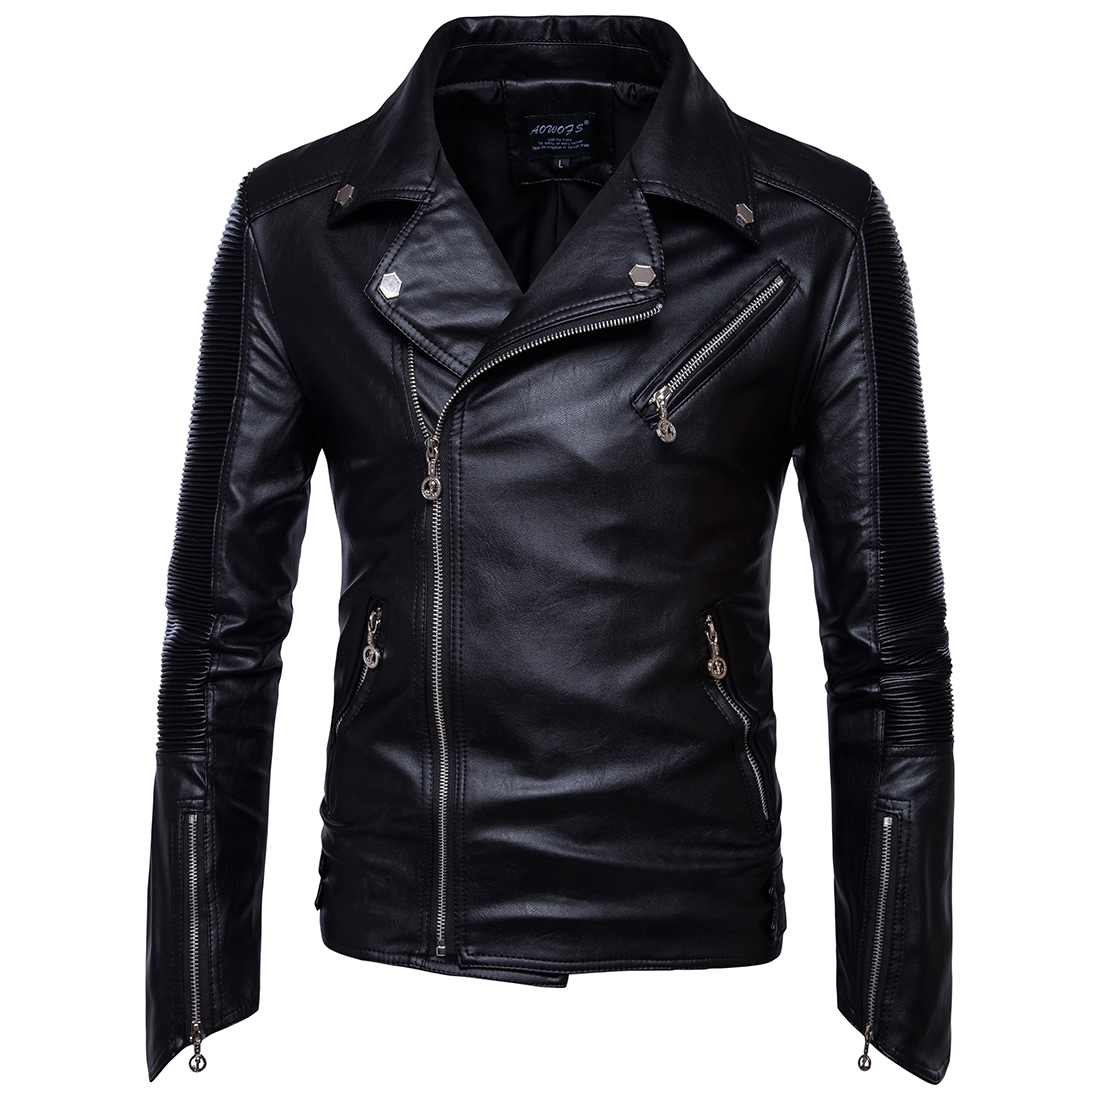 Autumn and winter fashion moto jackets side zipper Placket PU leather motorcycle jacket men black coat Slim stand collar